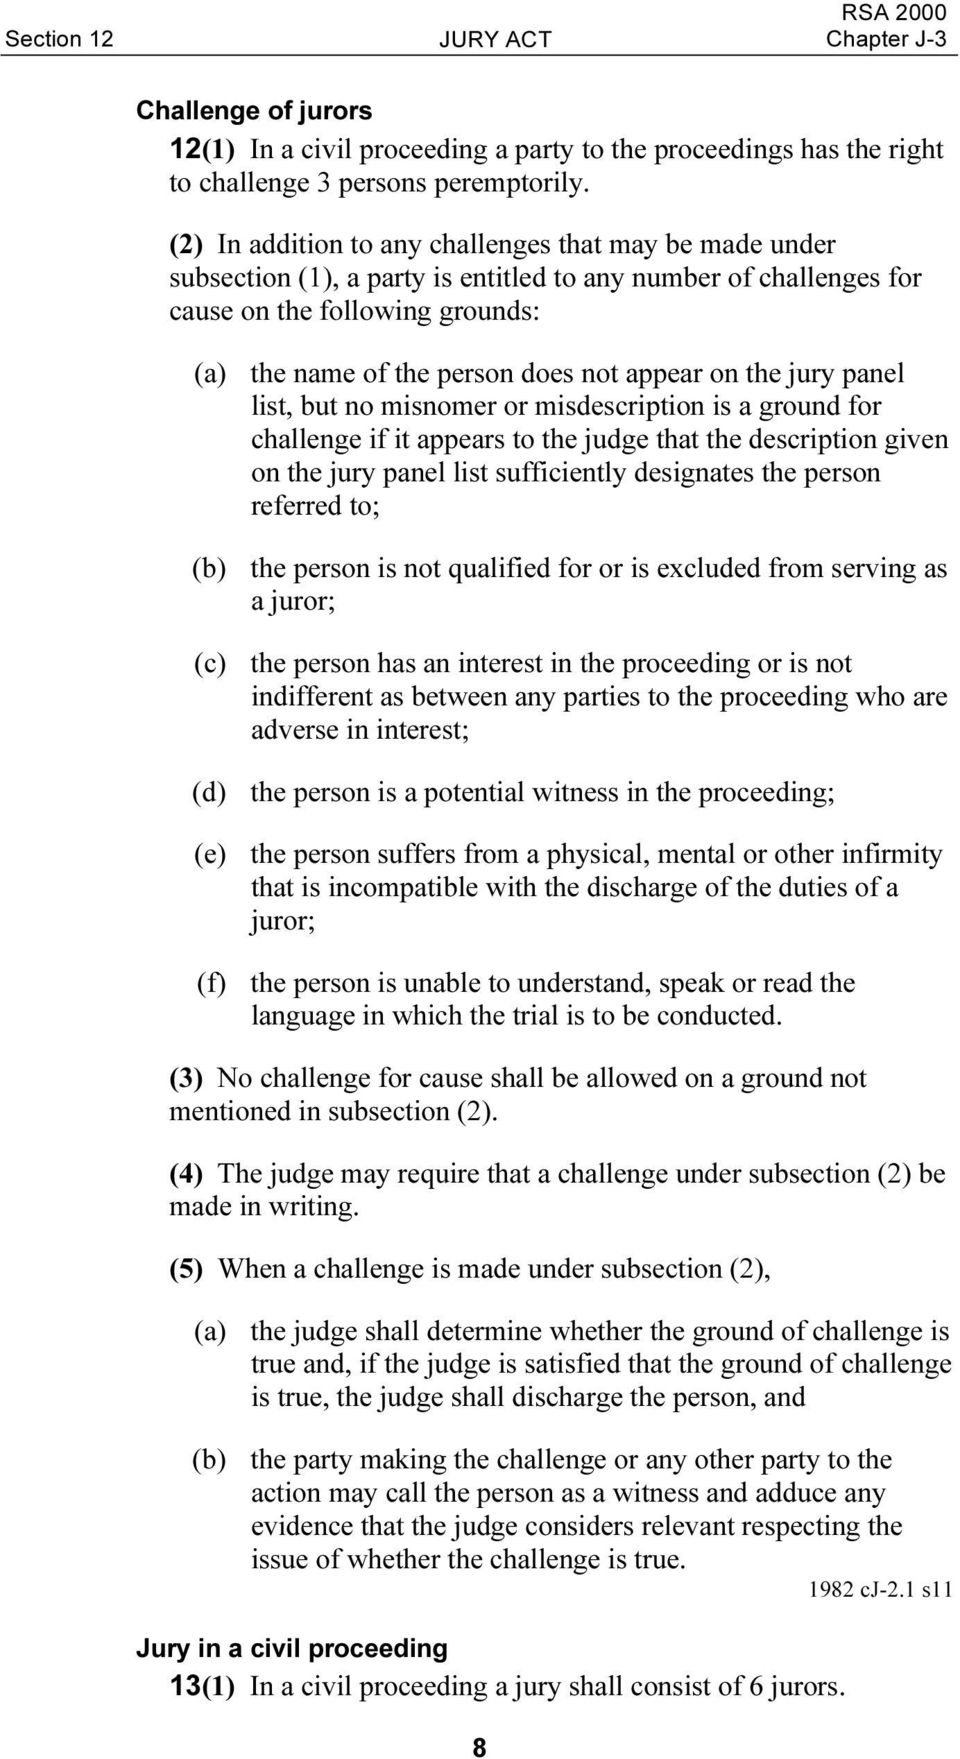 on the jury panel list, but no misnomer or misdescription is a ground for challenge if it appears to the judge that the description given on the jury panel list sufficiently designates the person